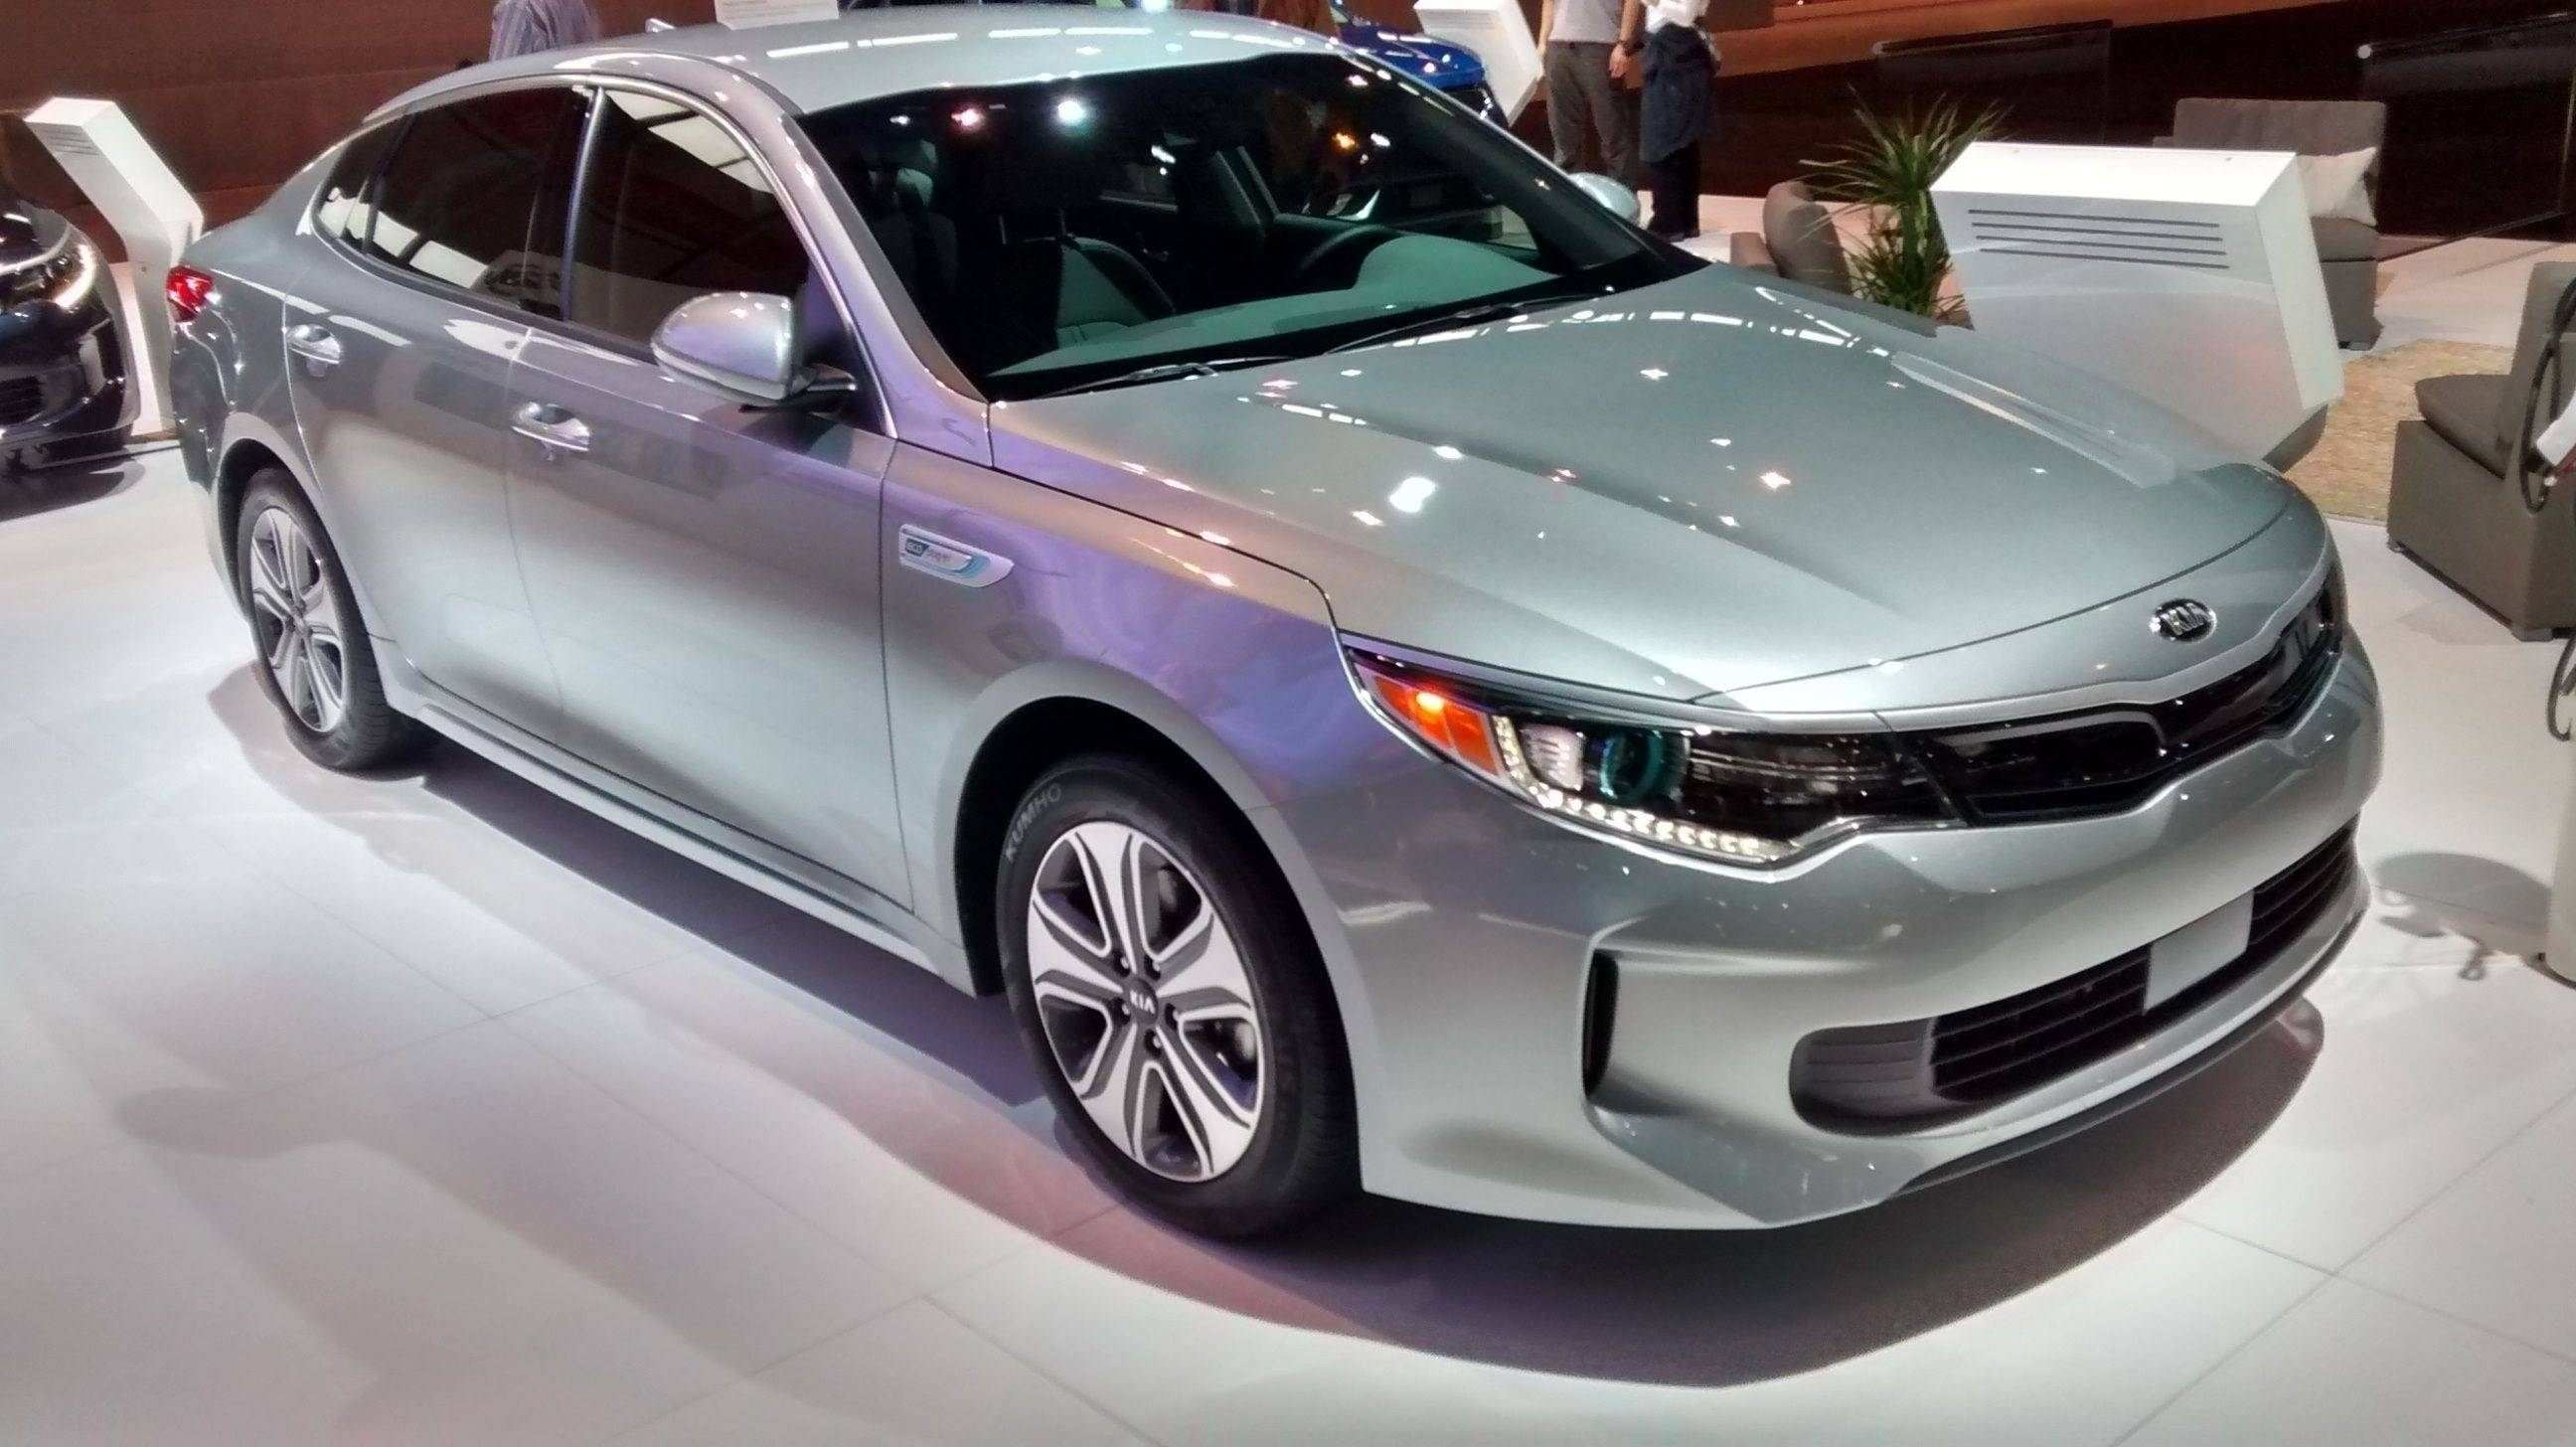 55 The Best 2019 Kia OptimaConcept Engine